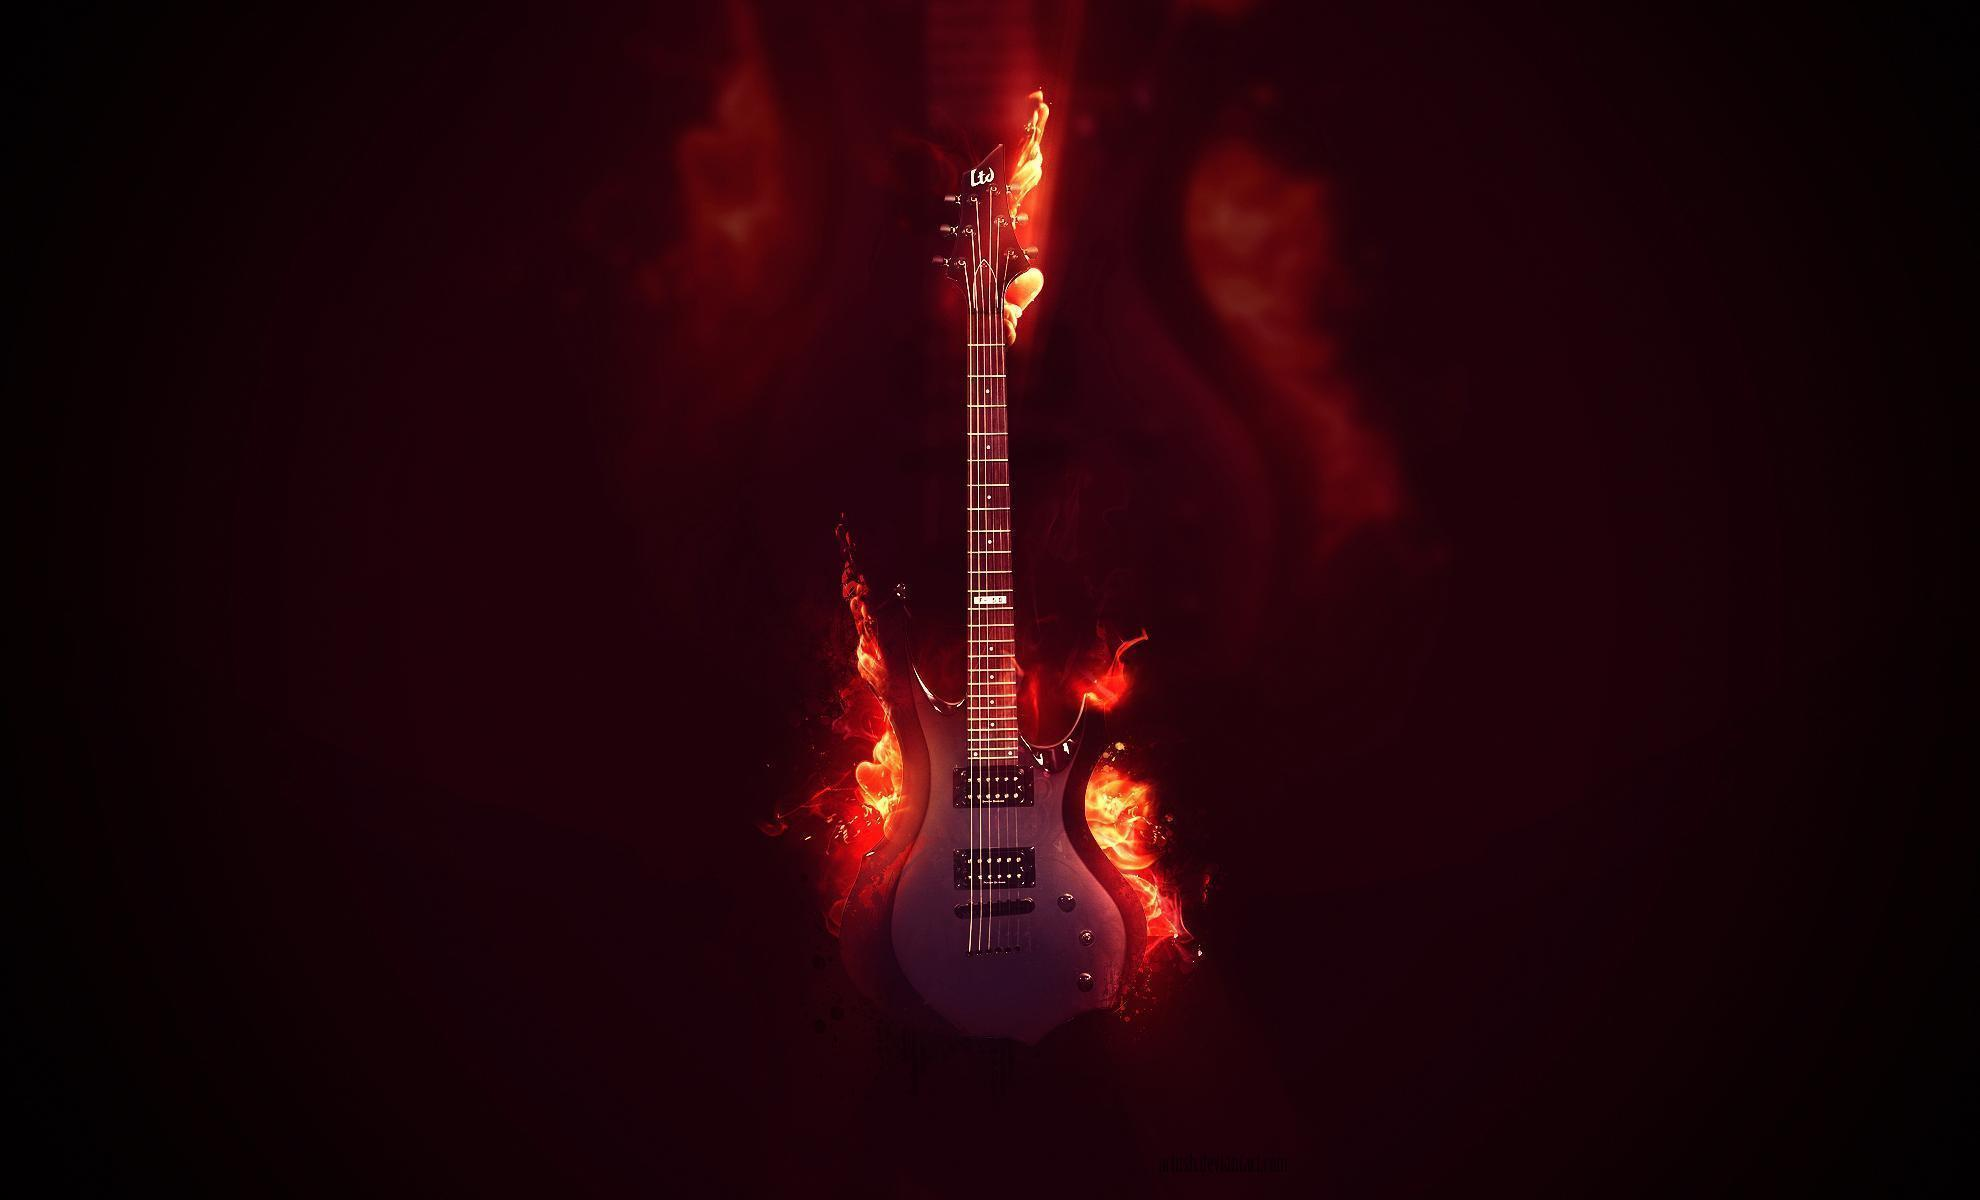 Guitar HD Wallpapers